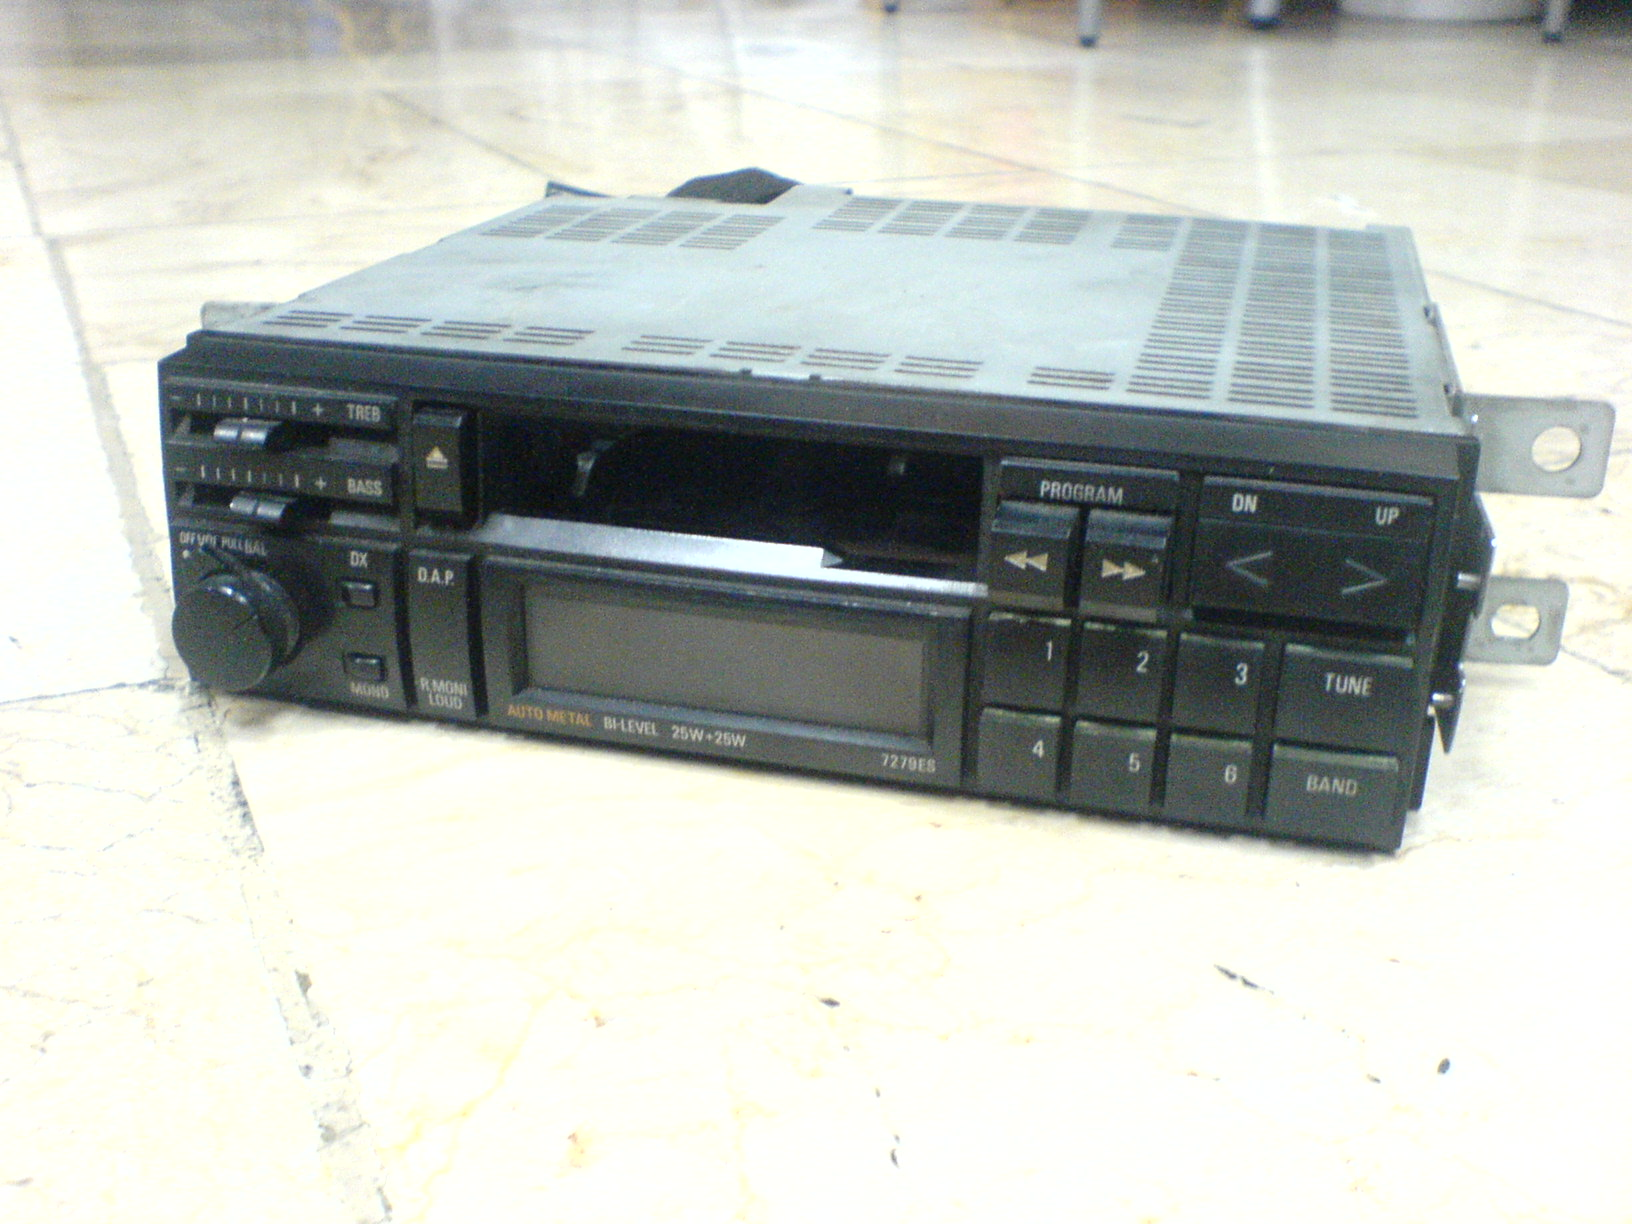 How to remove a car stereo from a Toyota Corolla '89 (AE92)